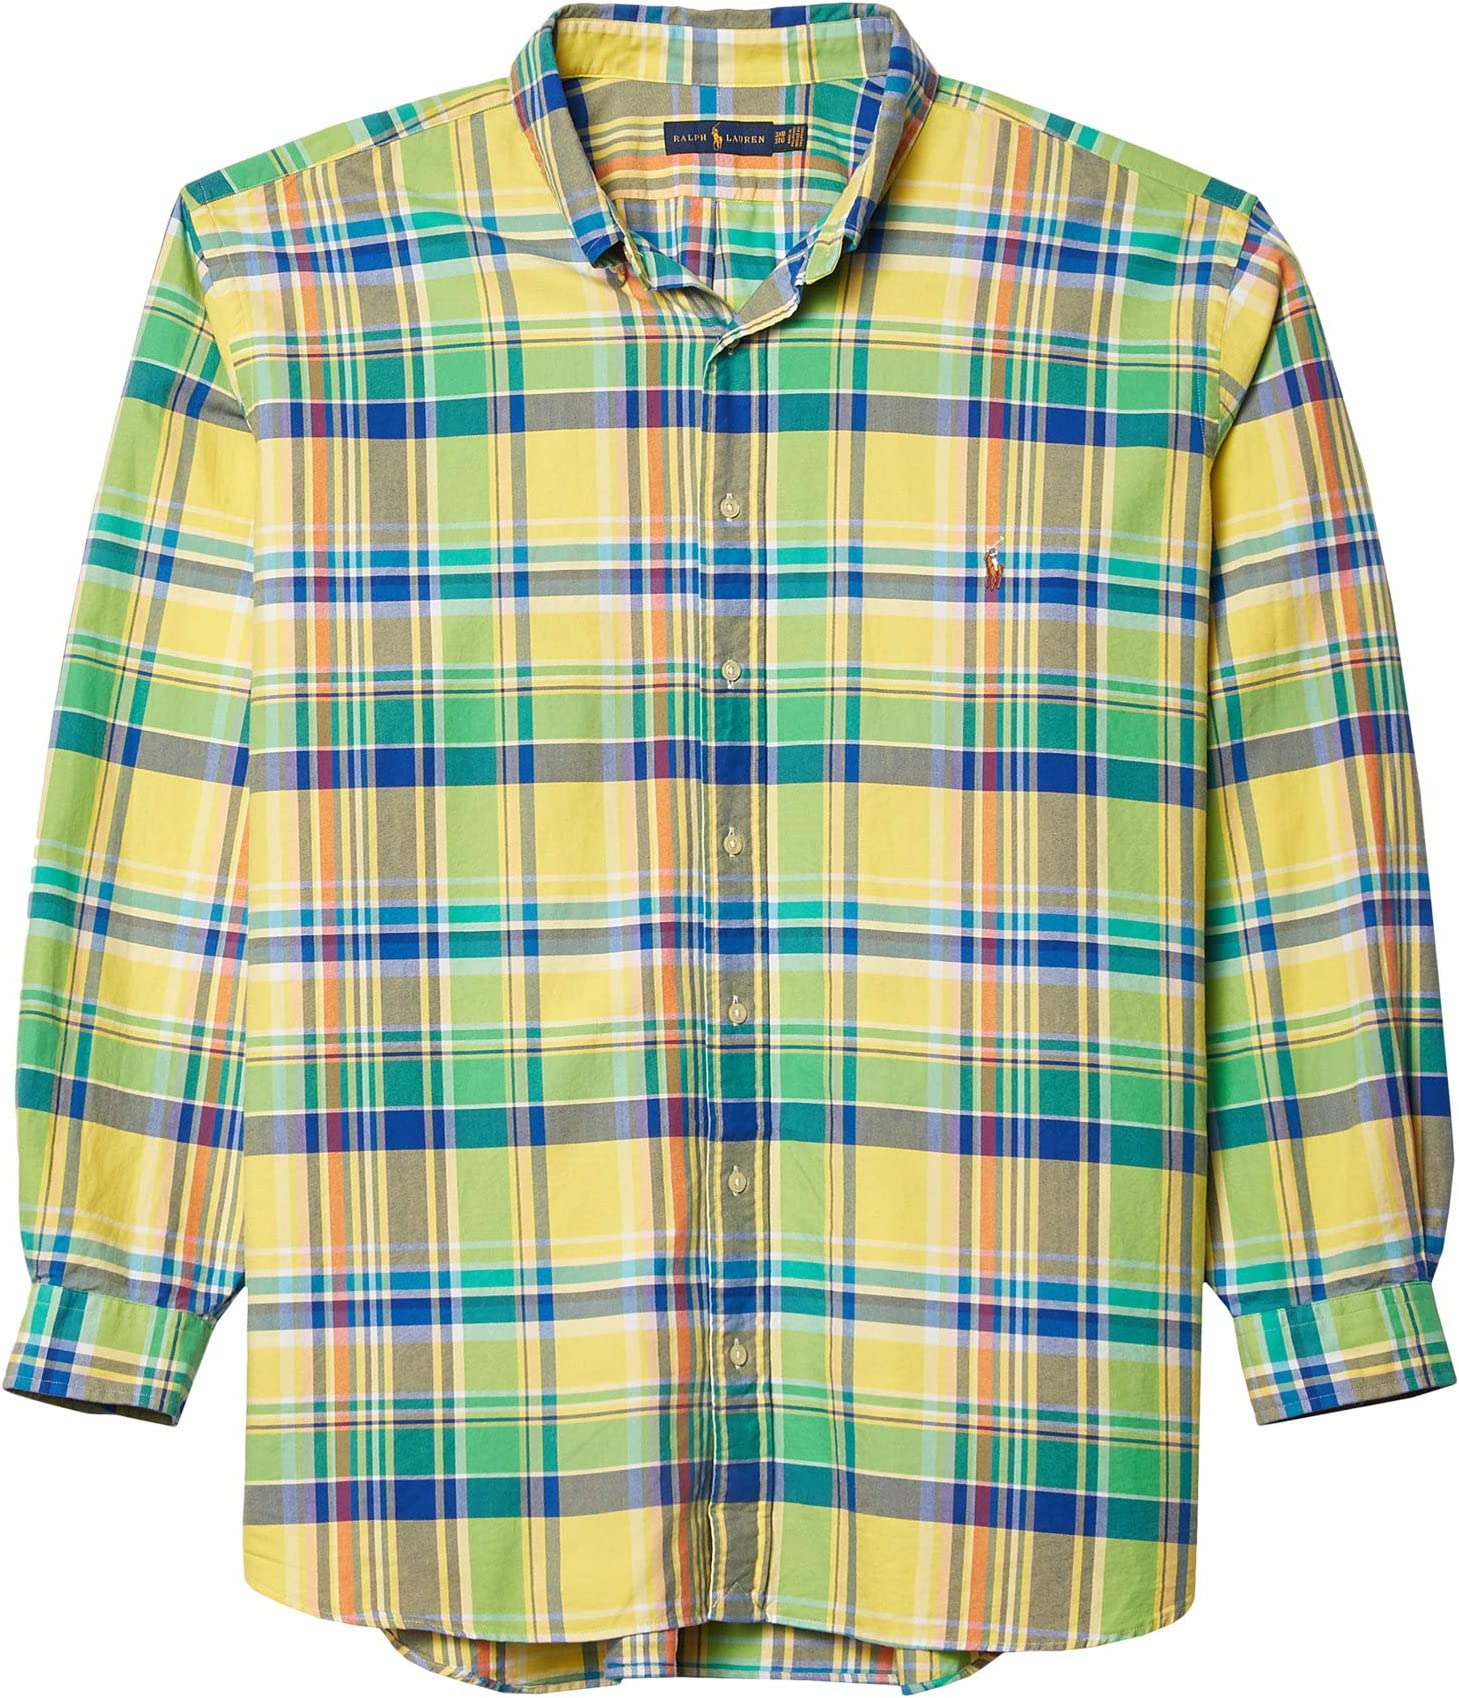 Polo Ralph Lauren Big & Tall Big & Tall Classic Fit Oxford Shirt